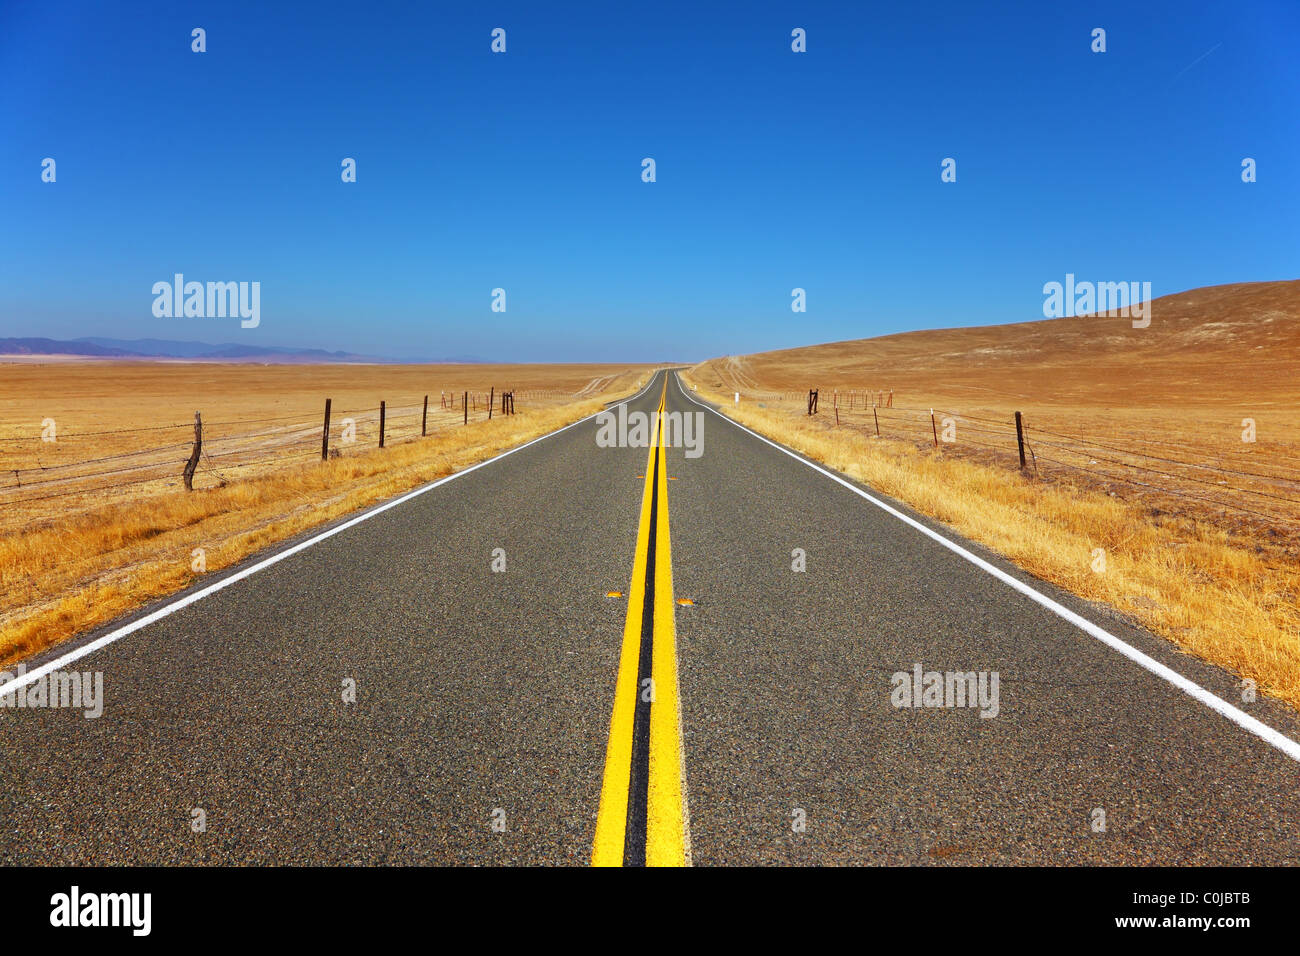 Travel to steppes on excellent American highway - Stock Image